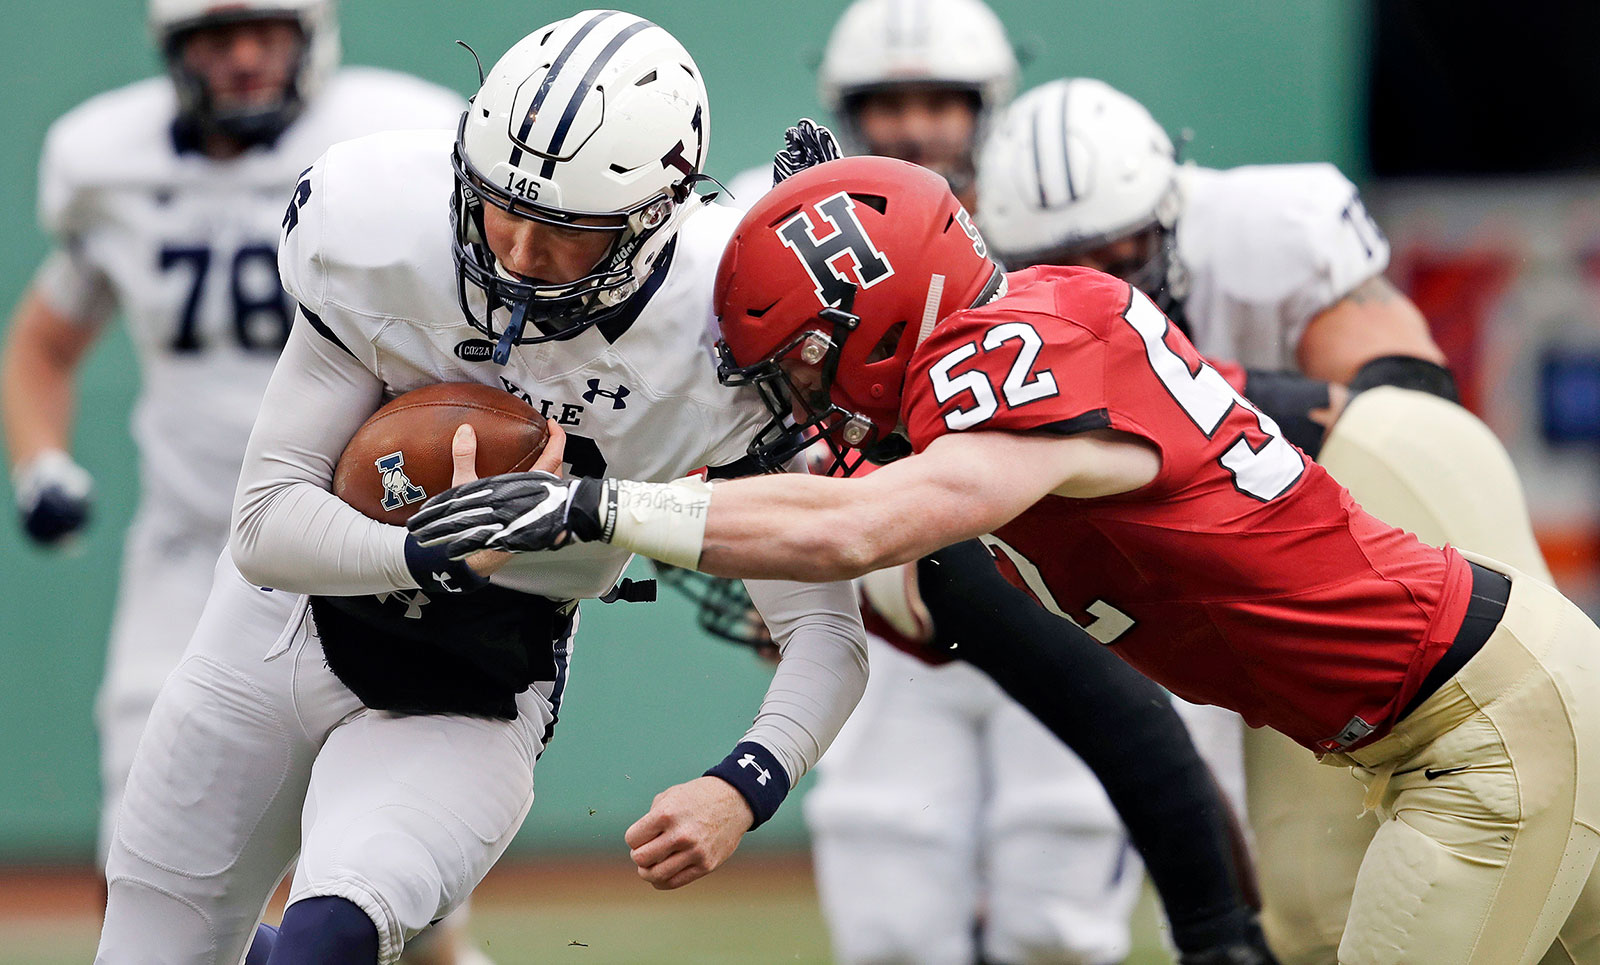 Yale and Harvard compete in an NCAA college football game at Fenway Park in Boston in 2018.